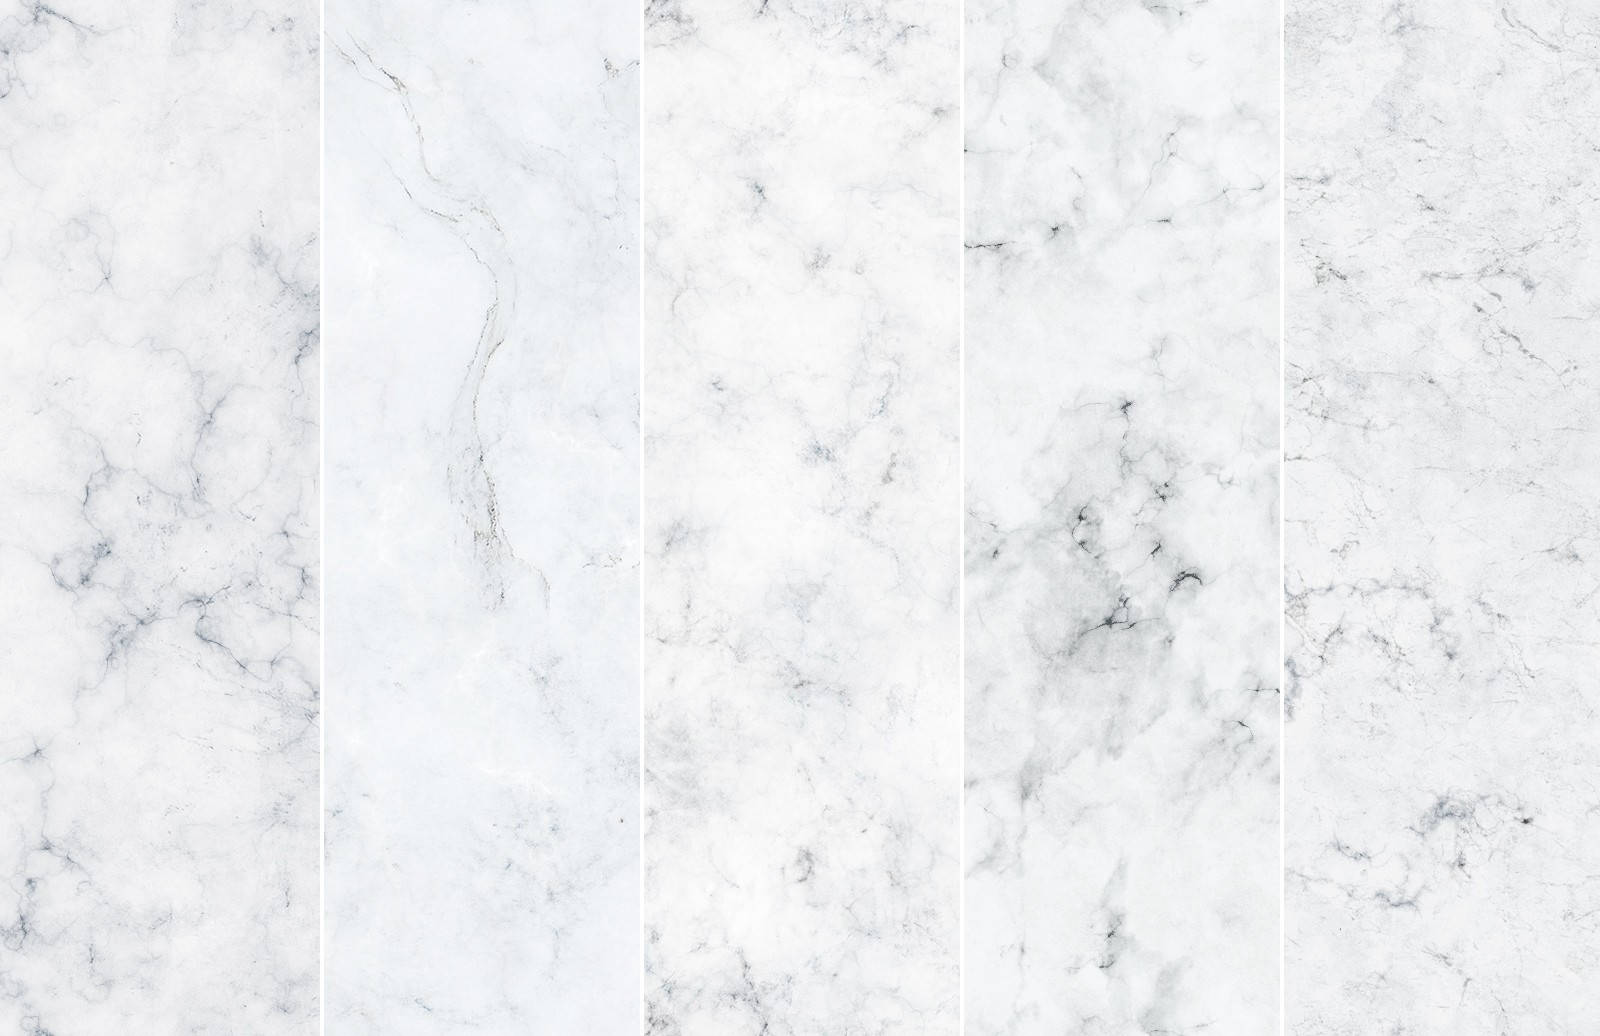 Large White Marble Seamless Textures Preview 2